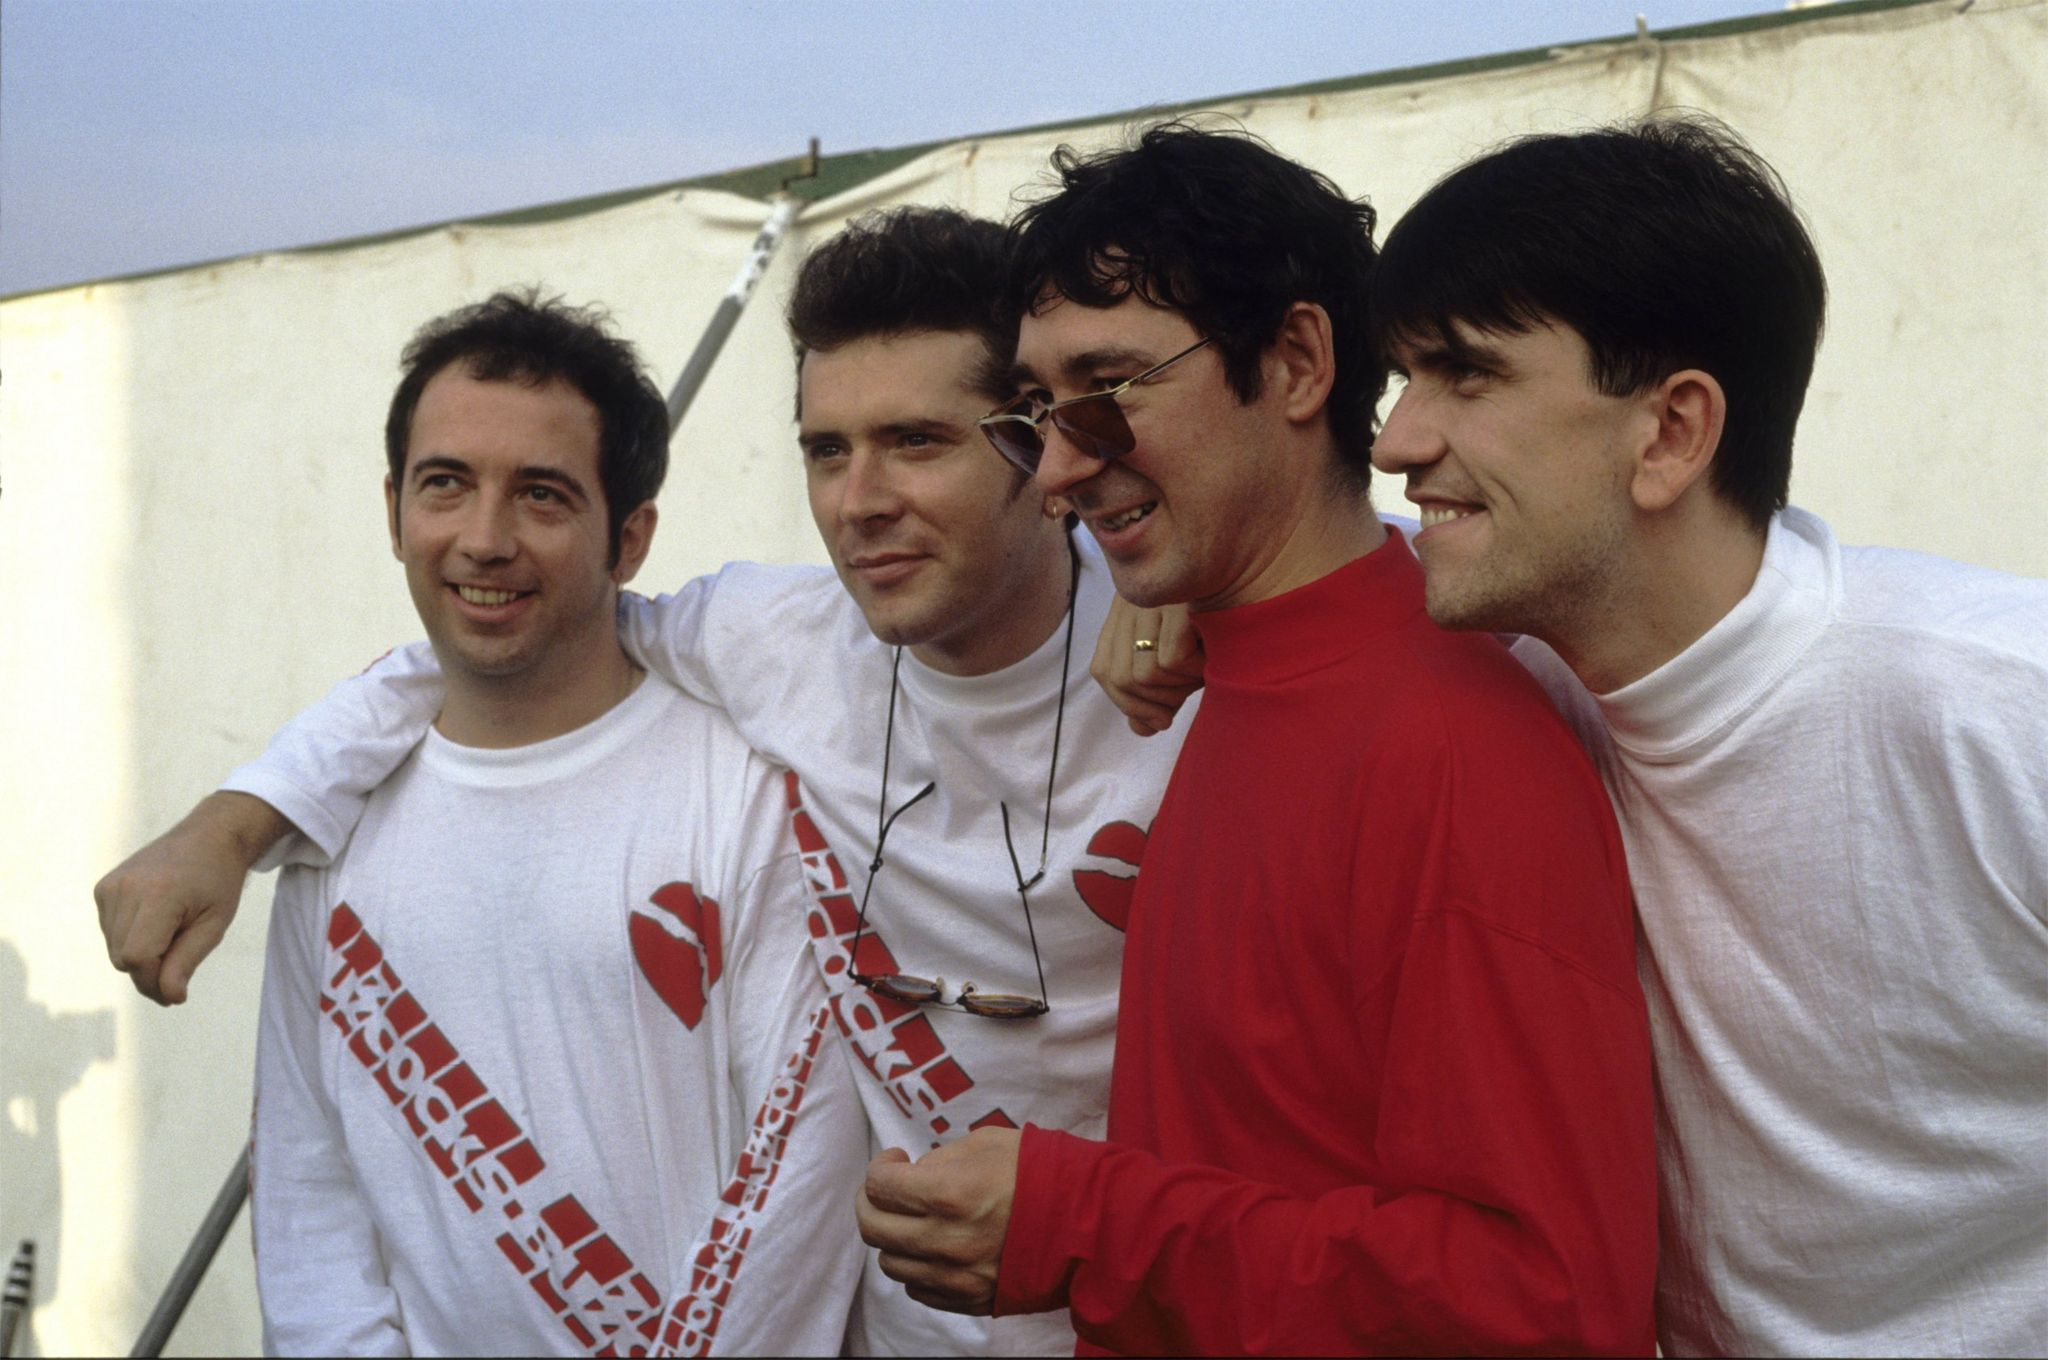 The re-formed Buzzcocks line-up at the Reading Festival in 1990. From left: Pete Shelley, Steve Diggle, Steve Garvey and Mike Joyce